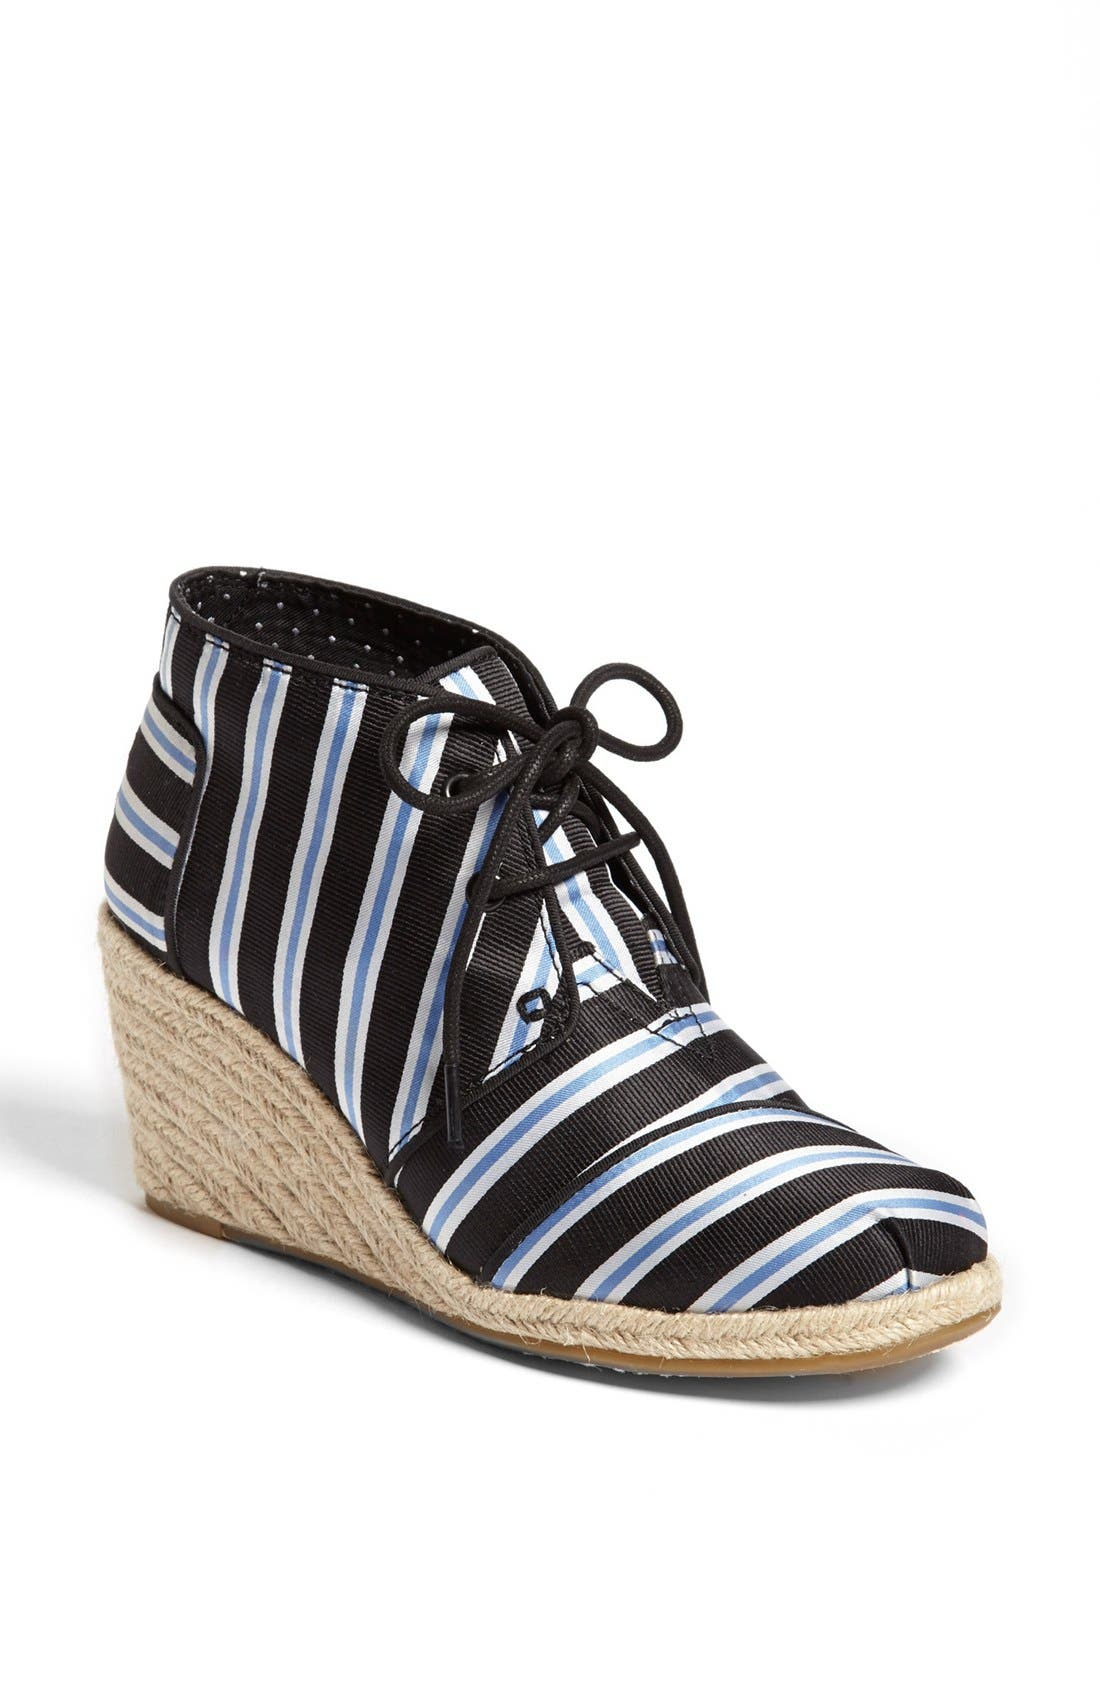 Main Image - TOMS 'Tabitha Simmons' Wedge Bootie (Women)